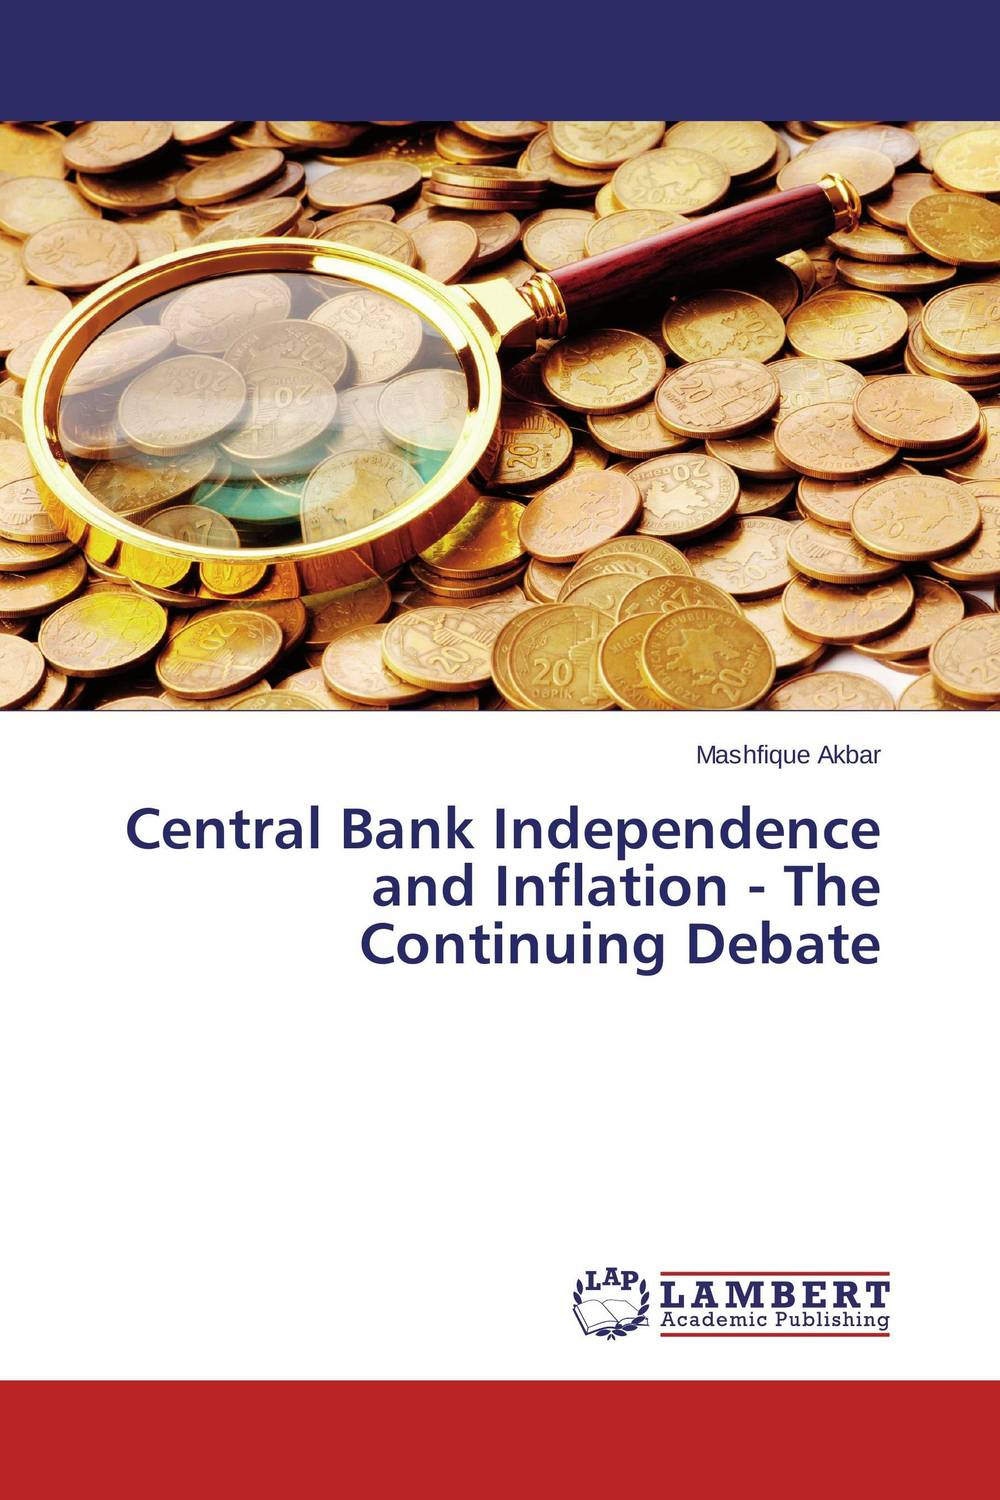 Central Bank Independence and Inflation - The Continuing Debate